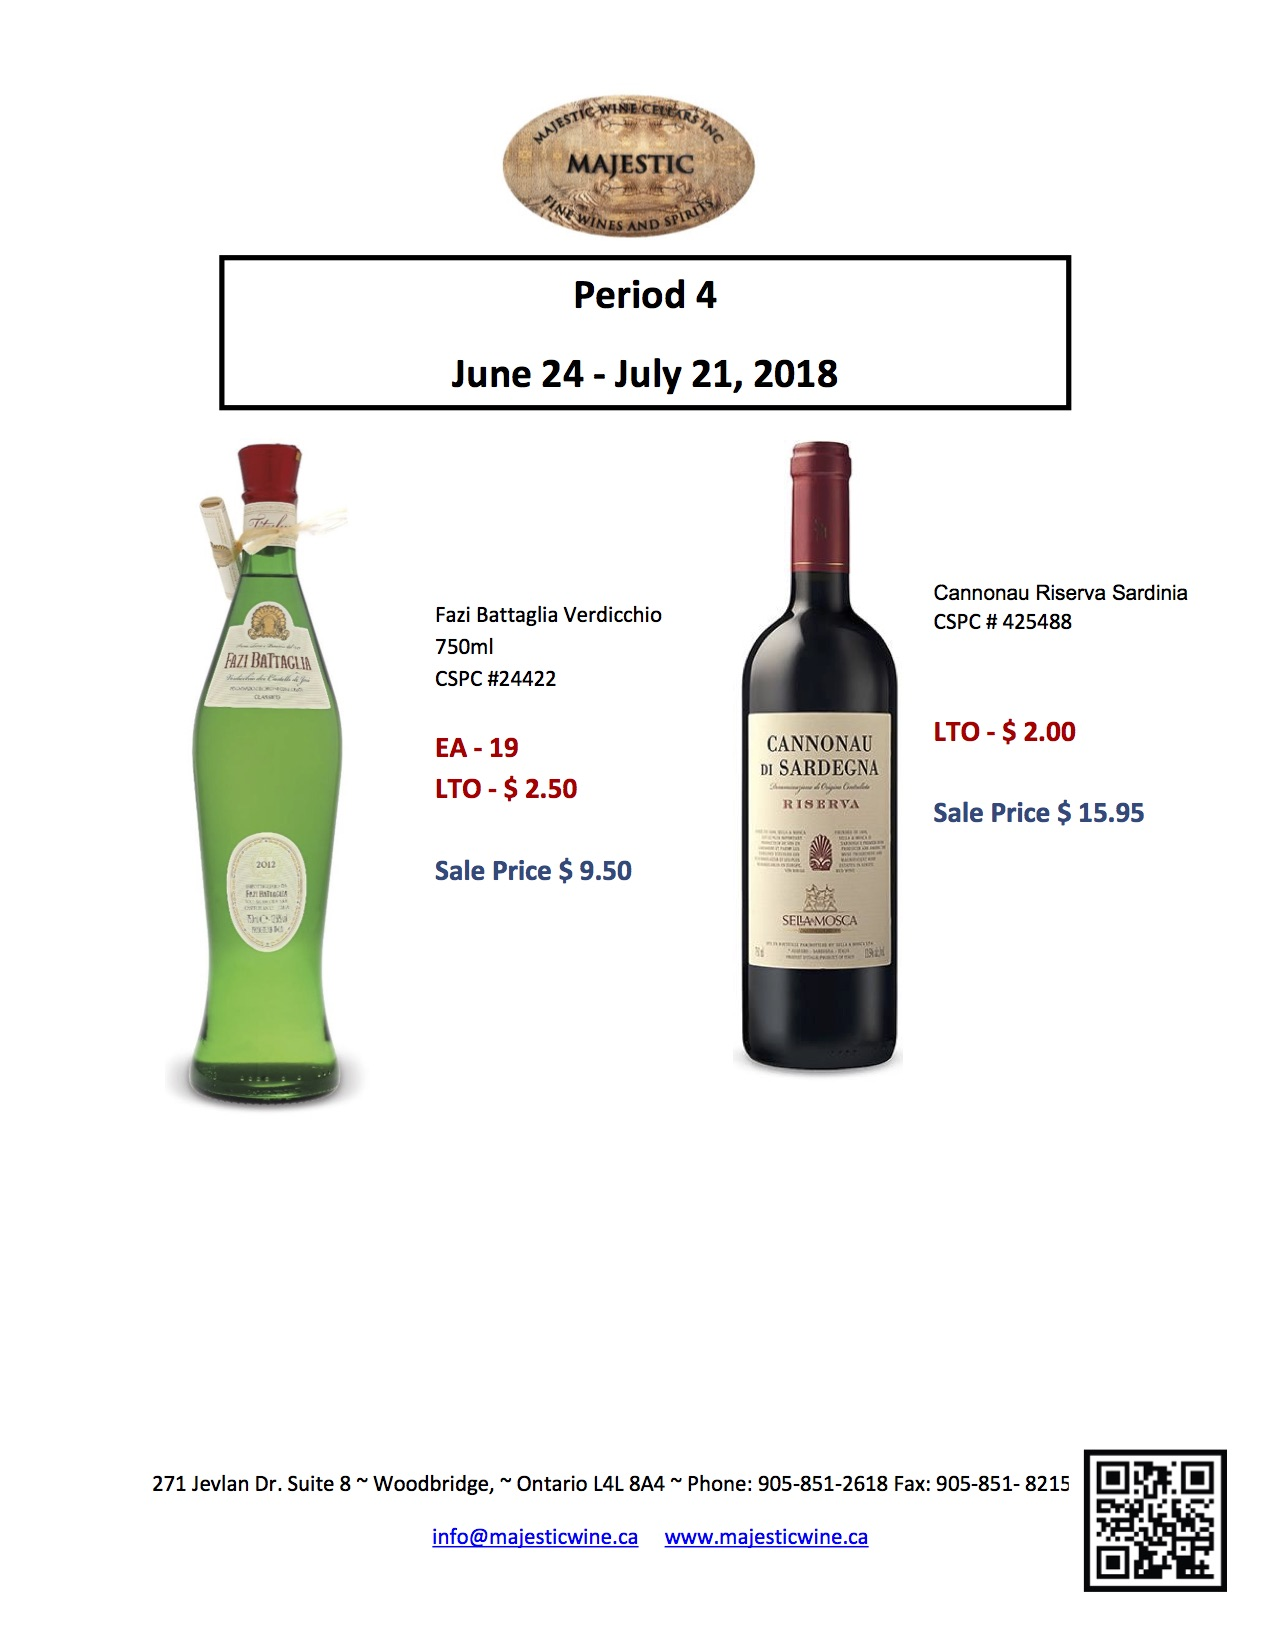 Period 4: June 24 - July 21, 2018 Promotion